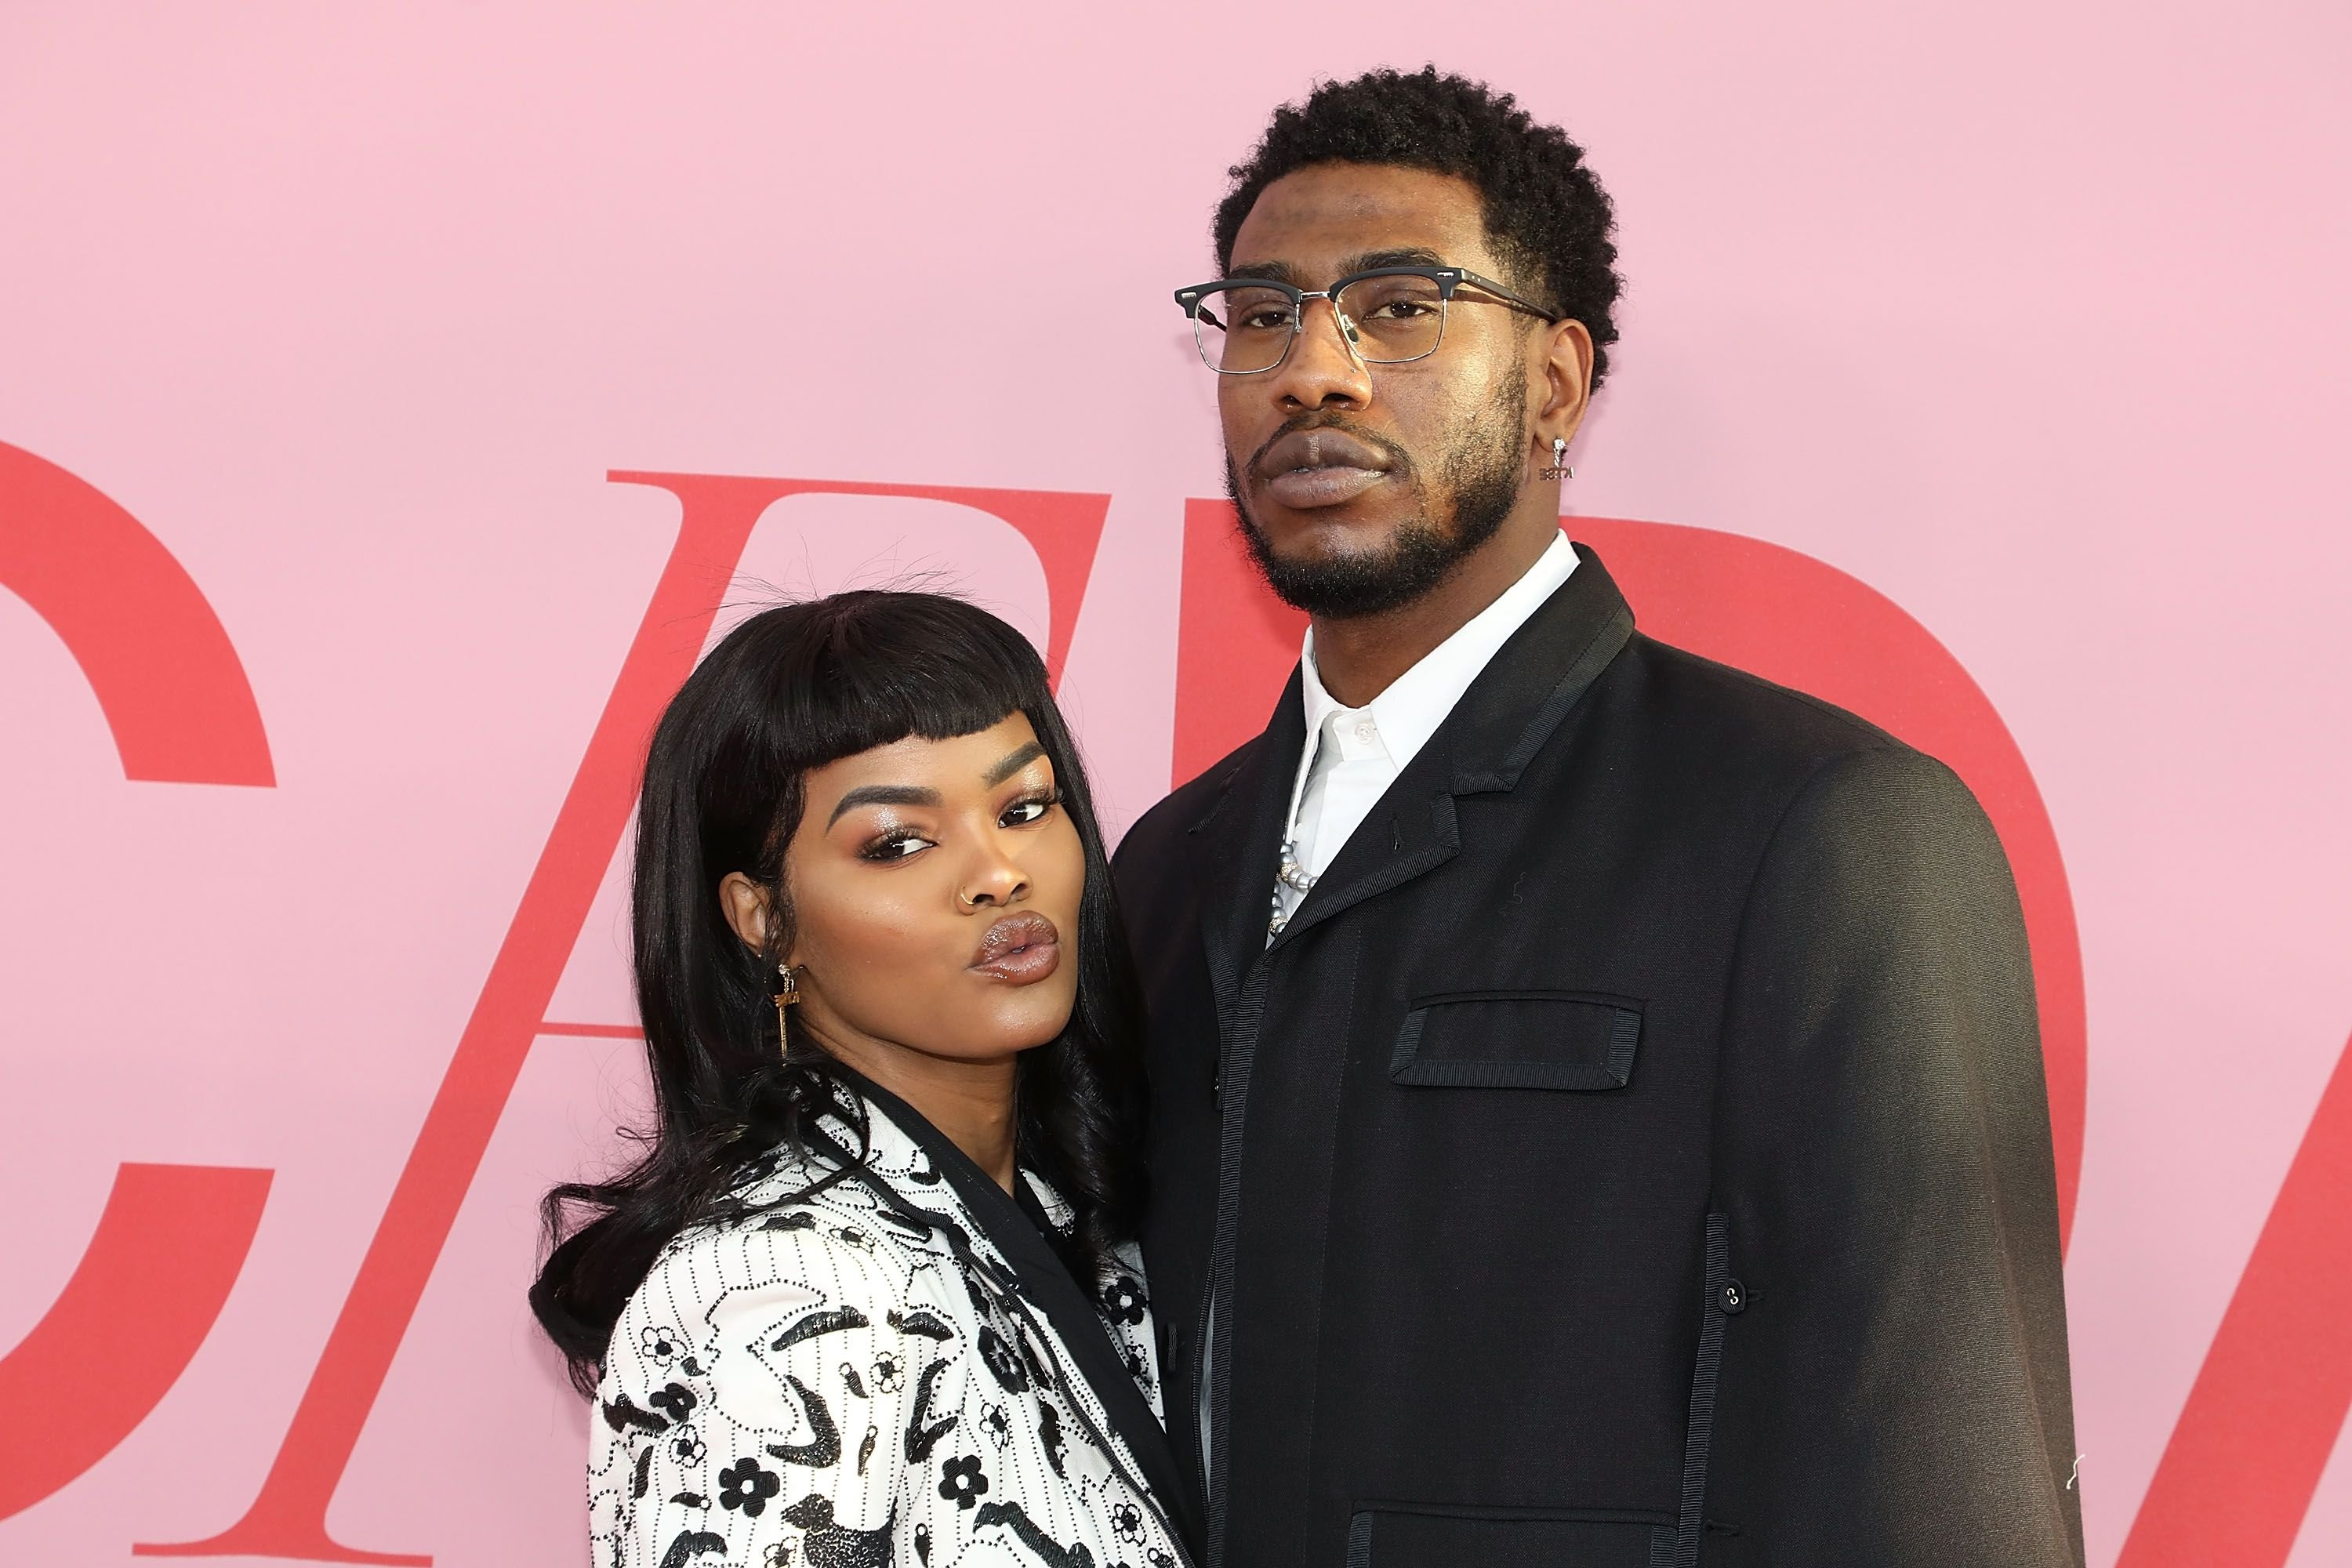 Teyana Taylor and Iman Shumpert at the 2019 CFDA Awards in June 2019 in New York City | Source: Getty Images